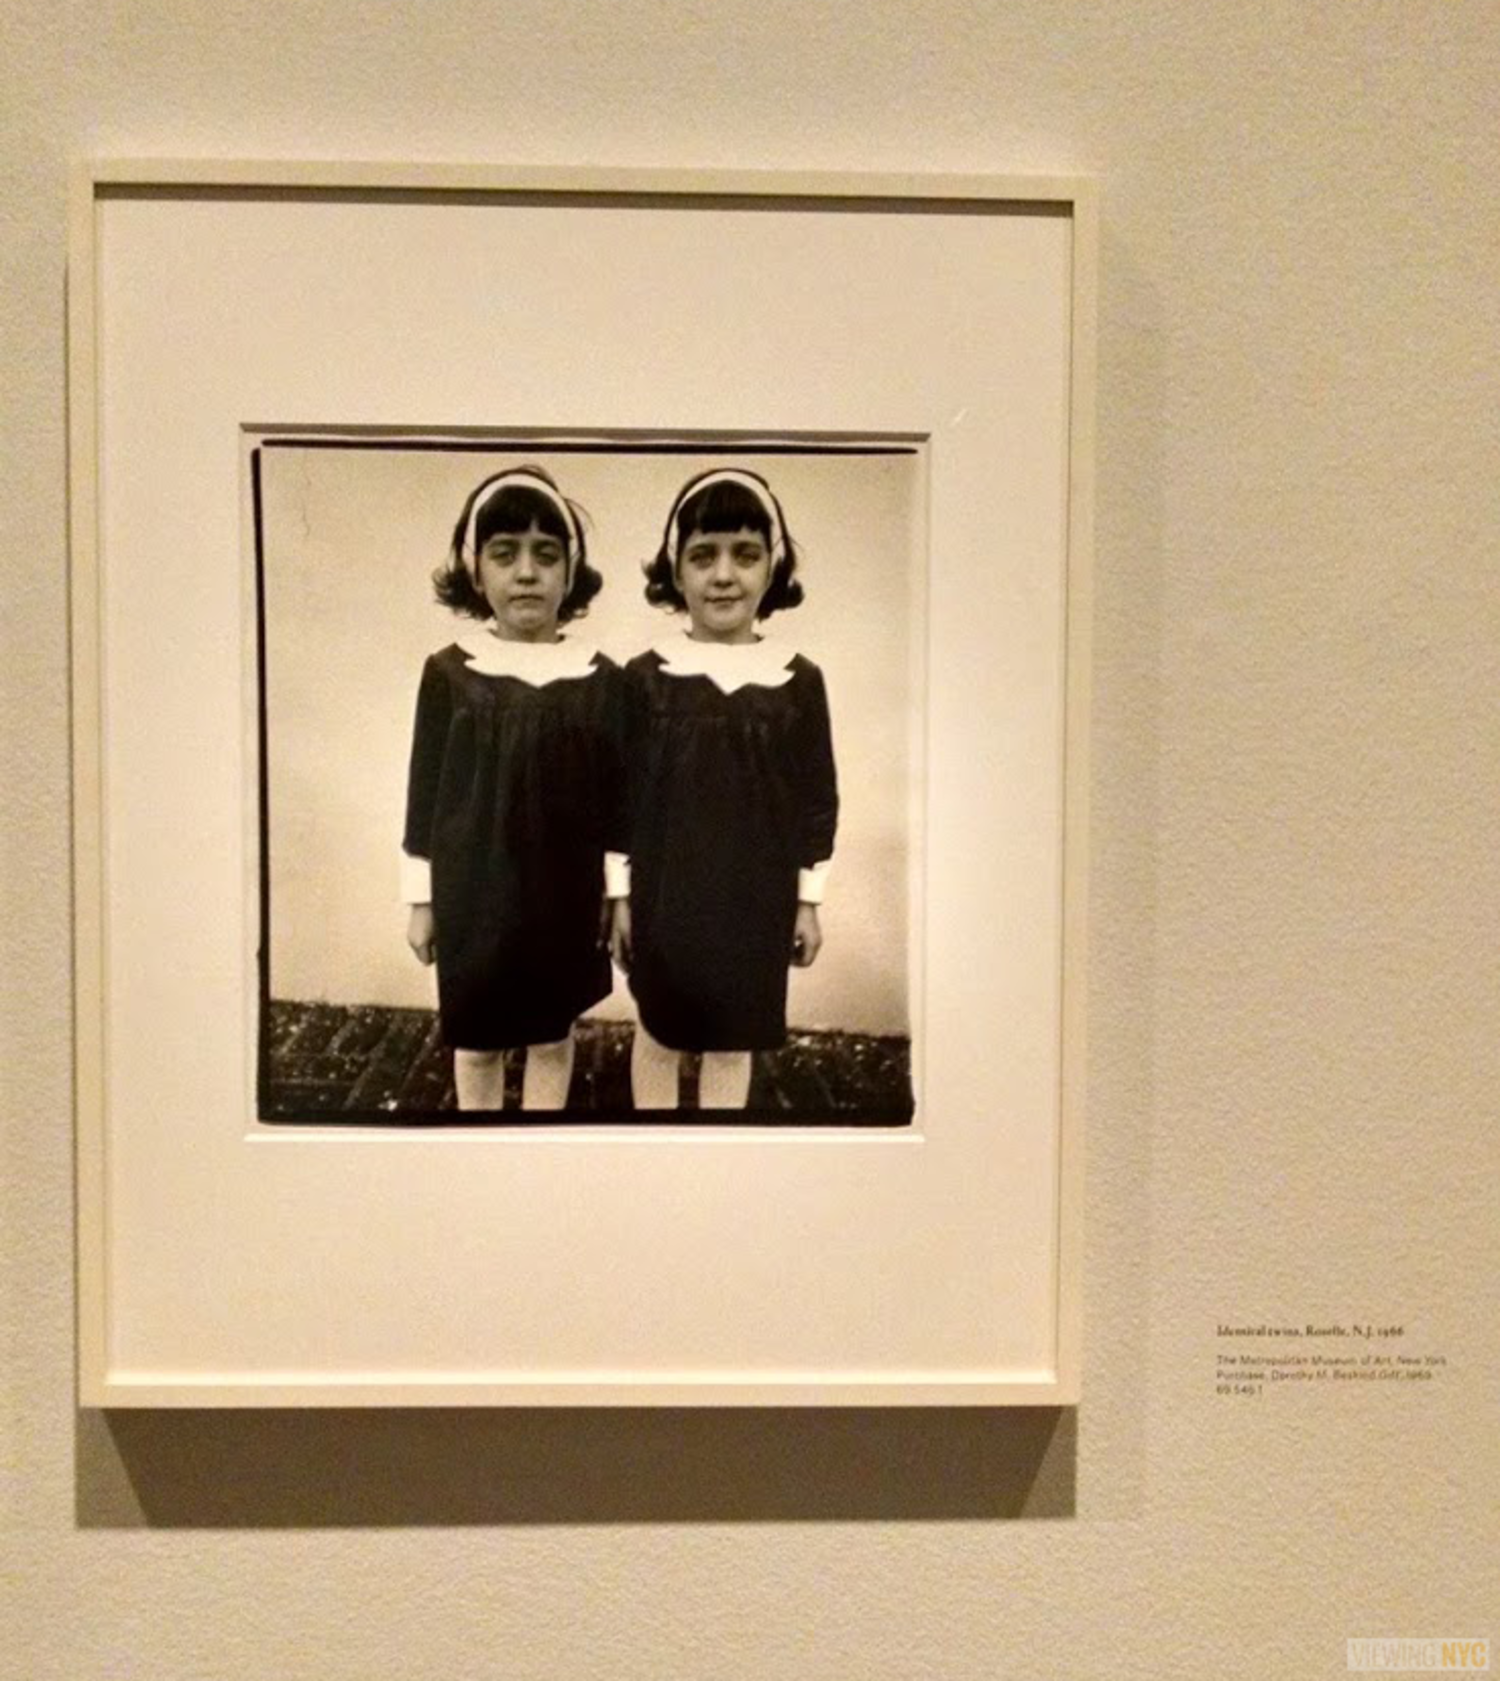 Identical twins, Roselle, N.J. | Diane Arbus at the Met Breuer